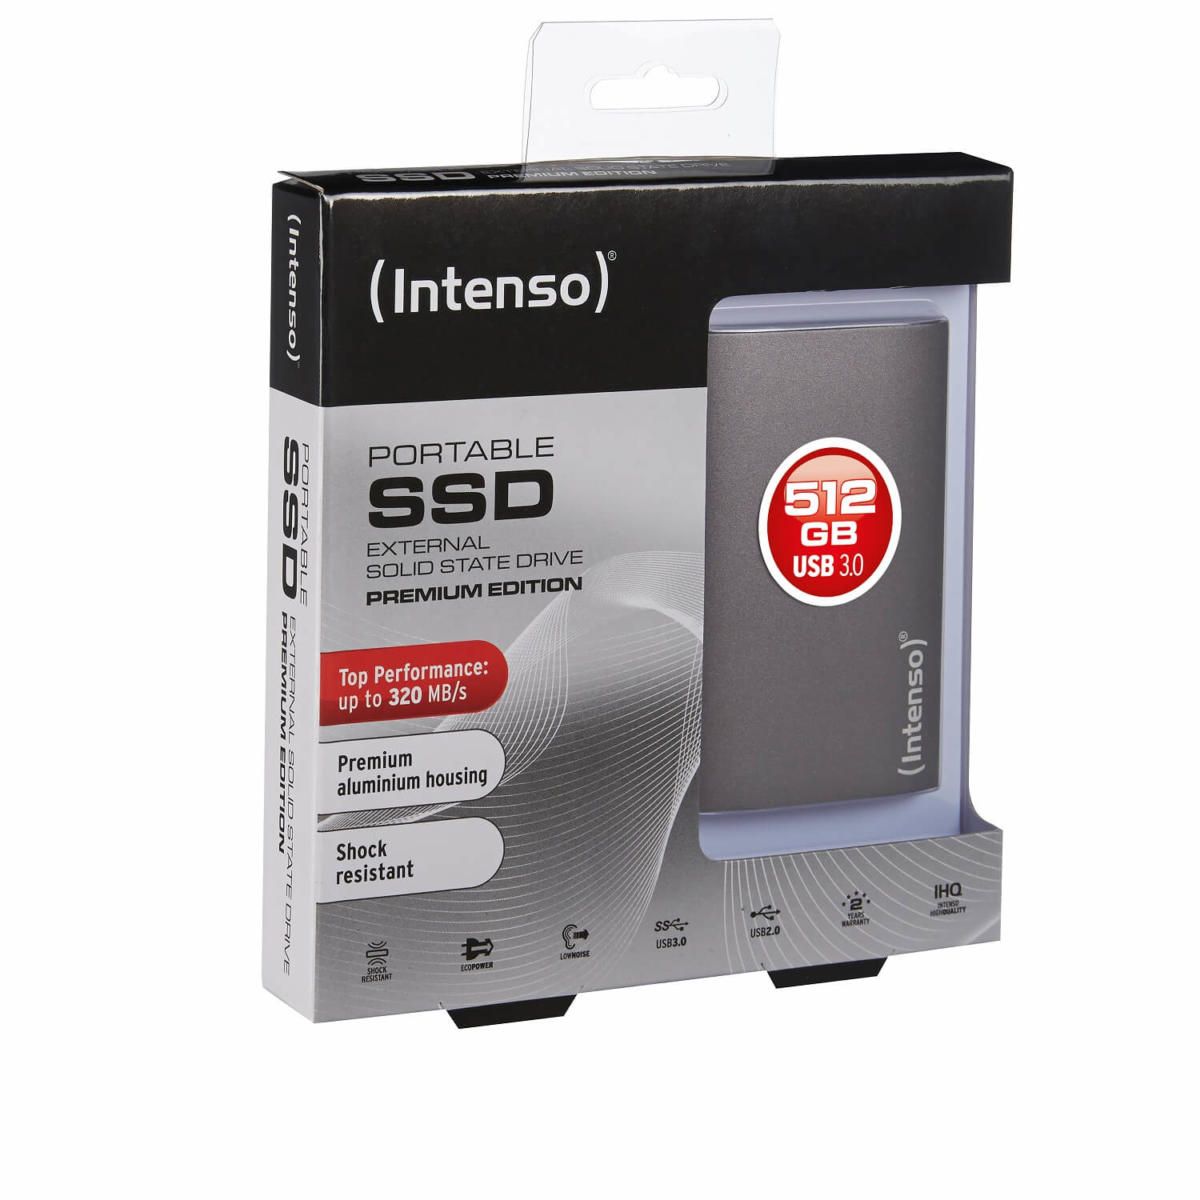 Intenso Portable SSD Premium Edition_4